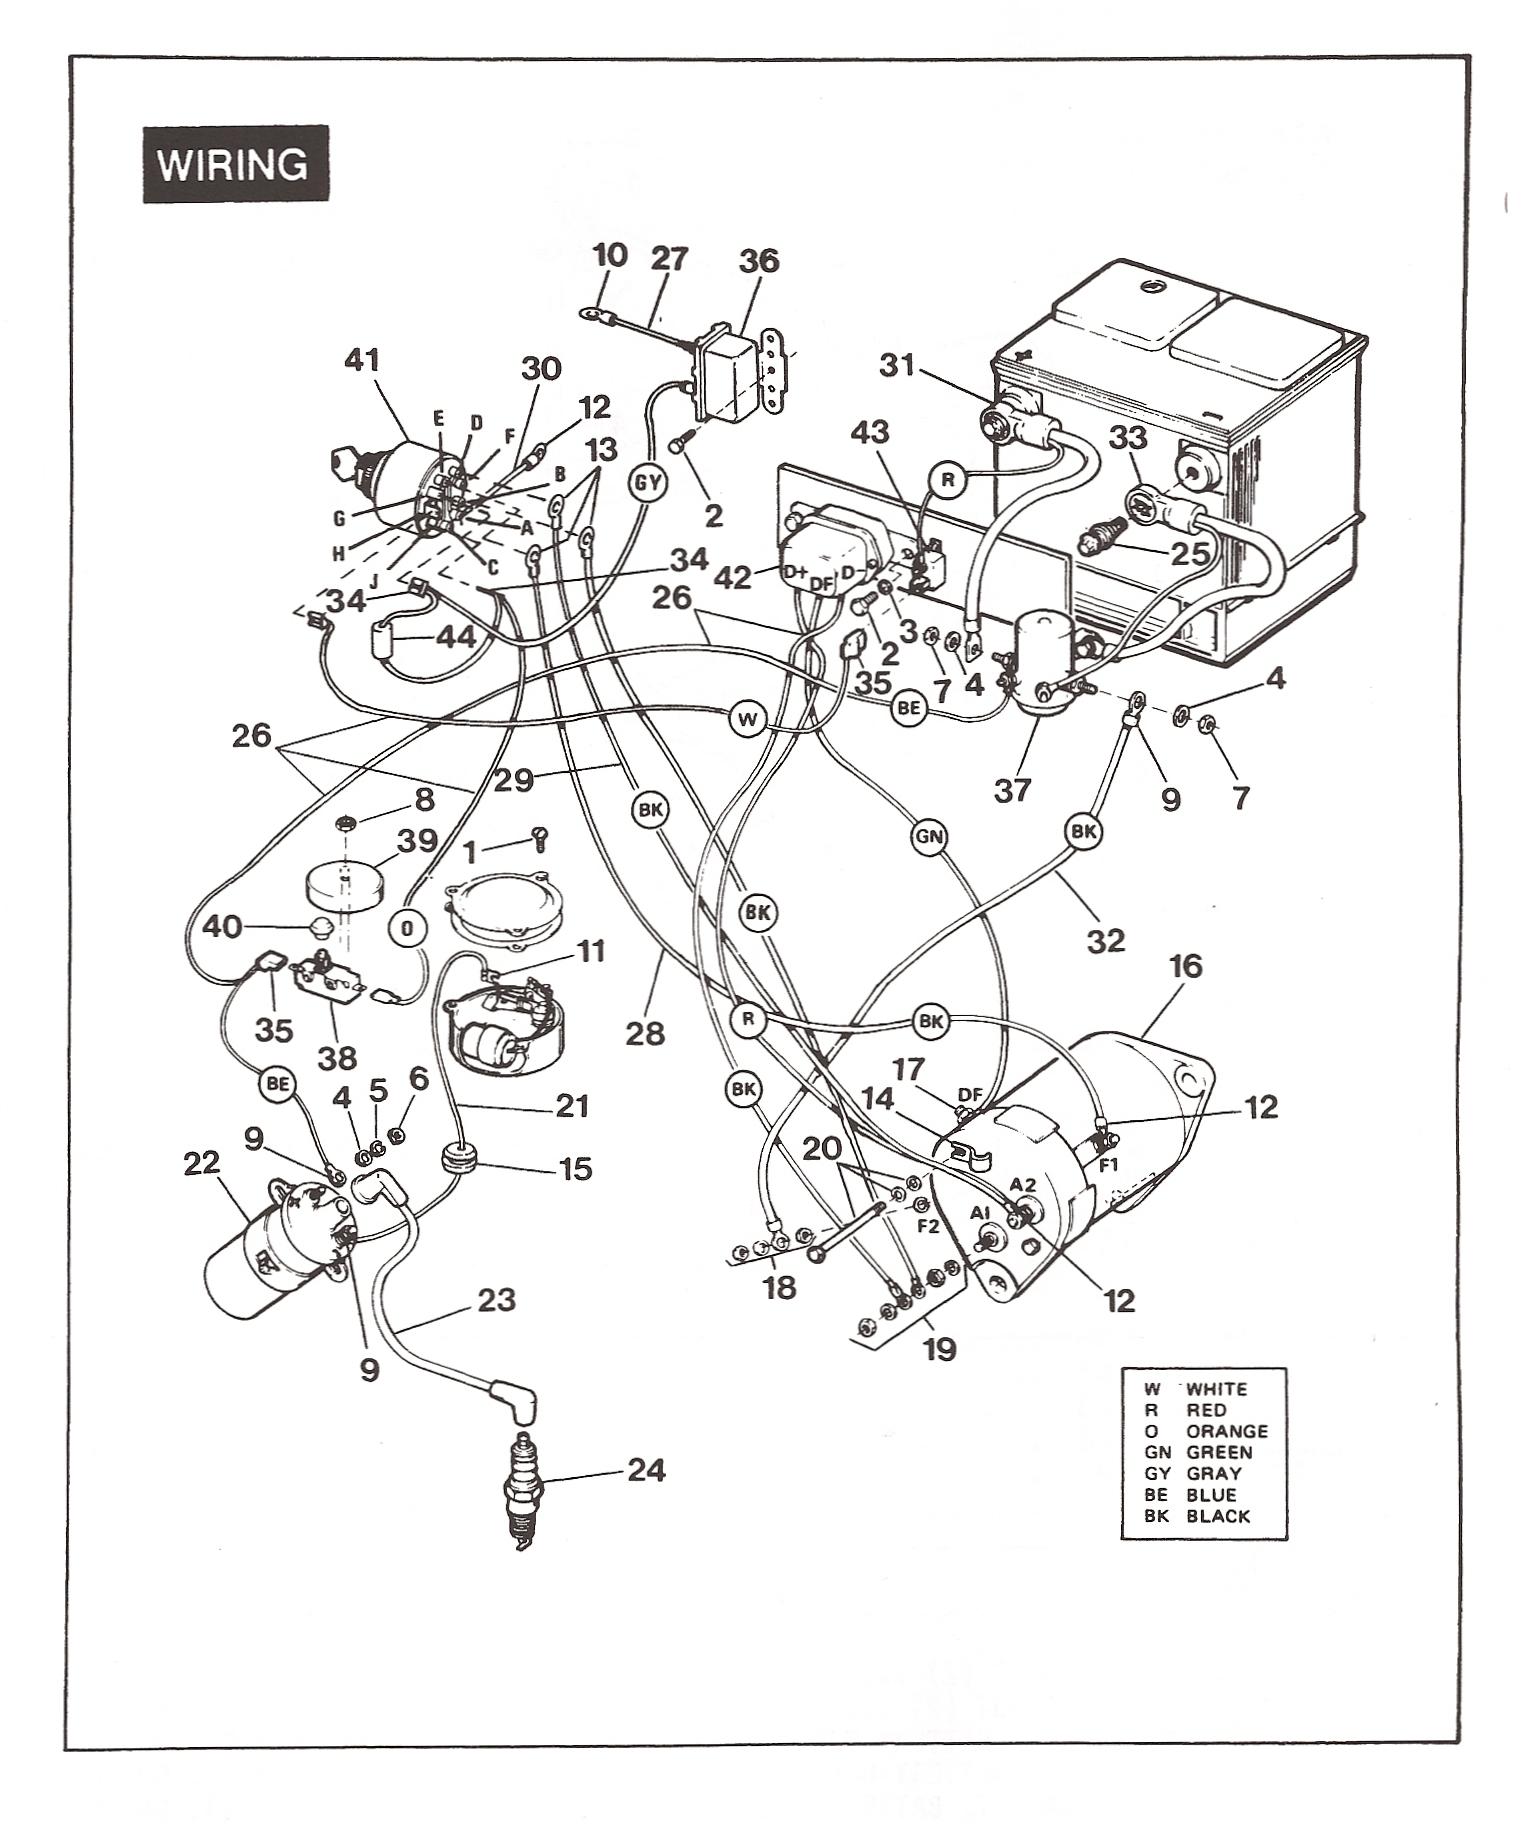 Ezgo Ignition Switch Wiring Diagram